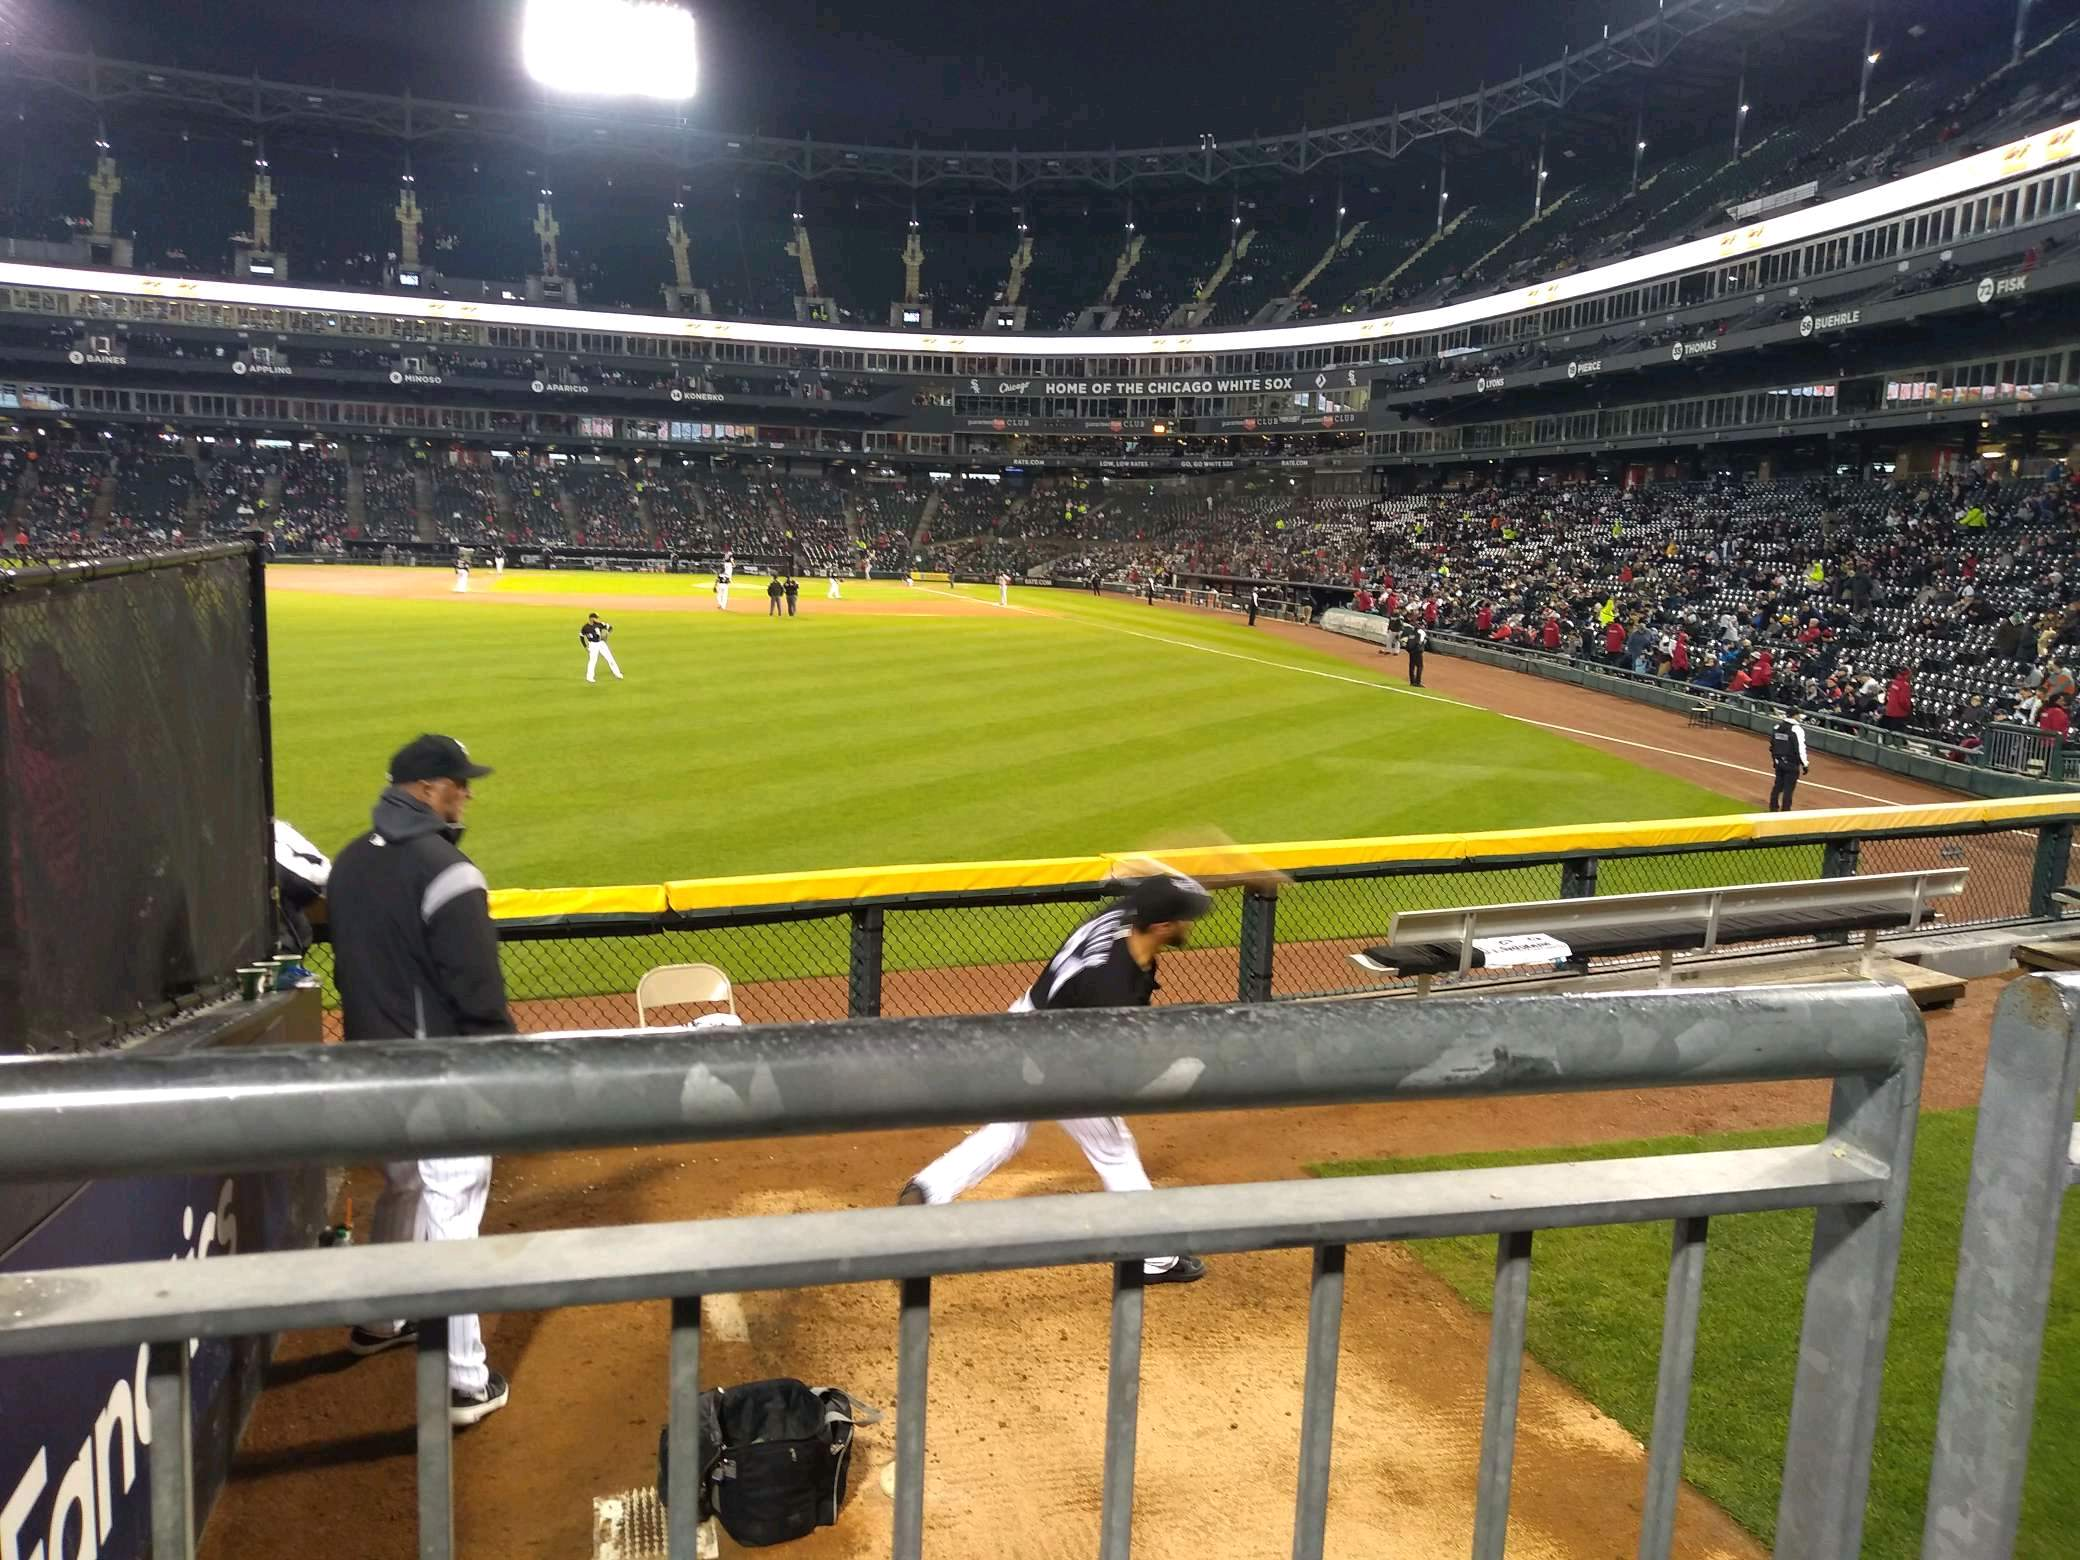 Guaranteed Rate Field Section 158 Row 8 Seat 22